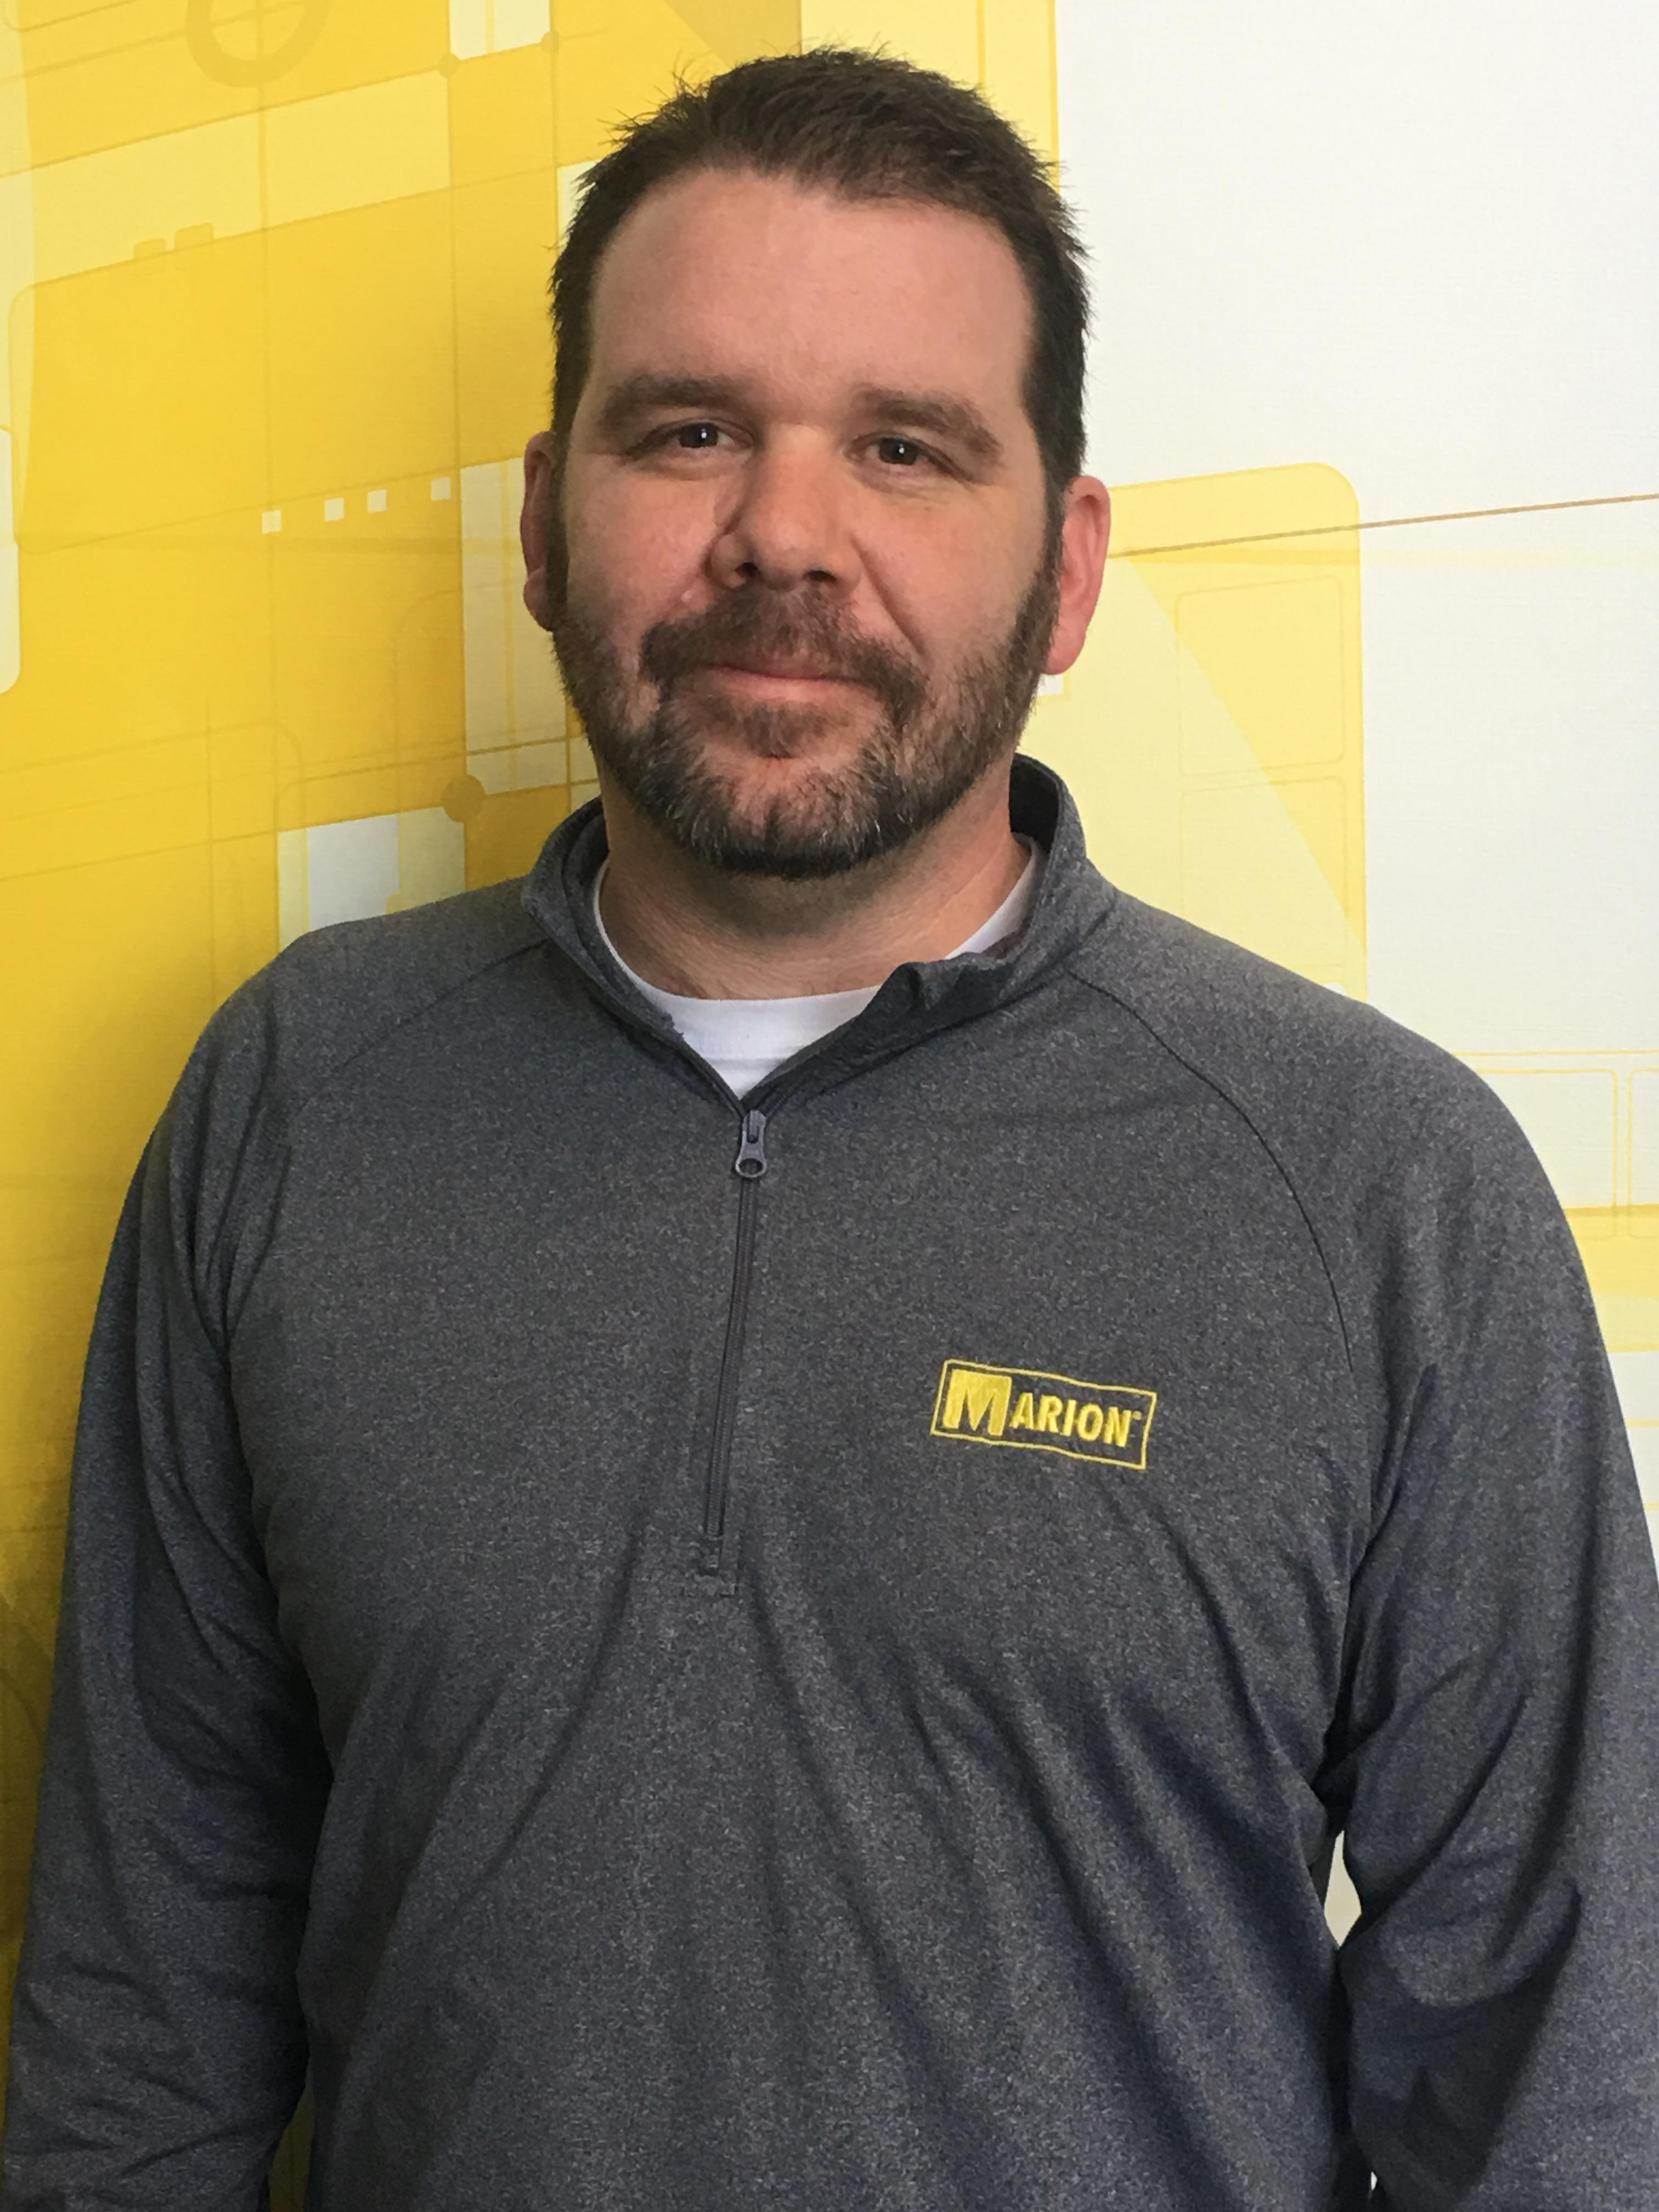 Marion Promotes Pat Flannery to Director of Manufacturing